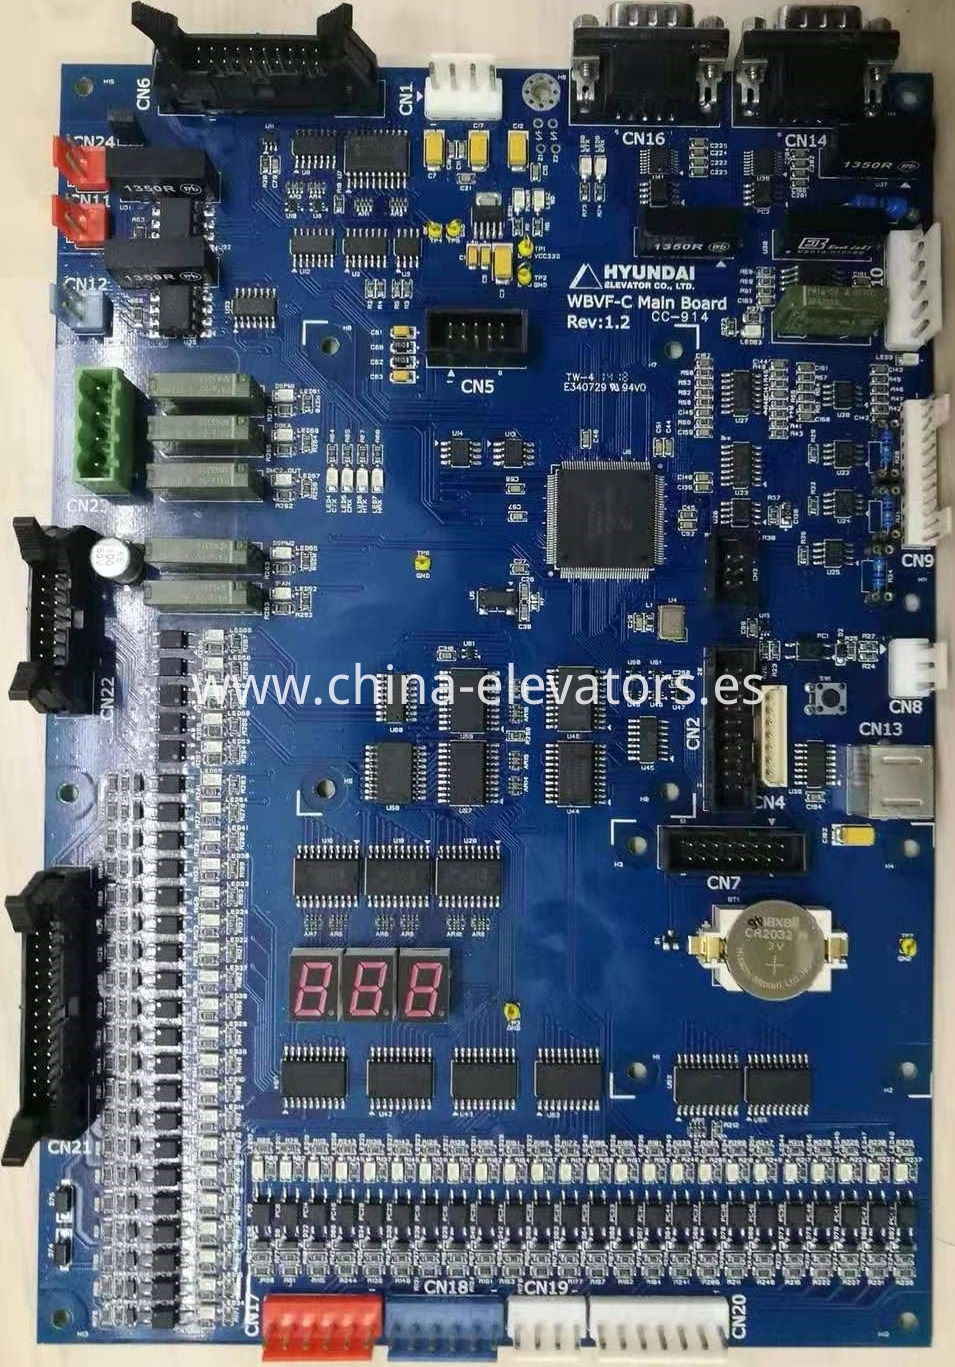 Hyundai WBVF-C Main Board Rev:1.2 / CC-914